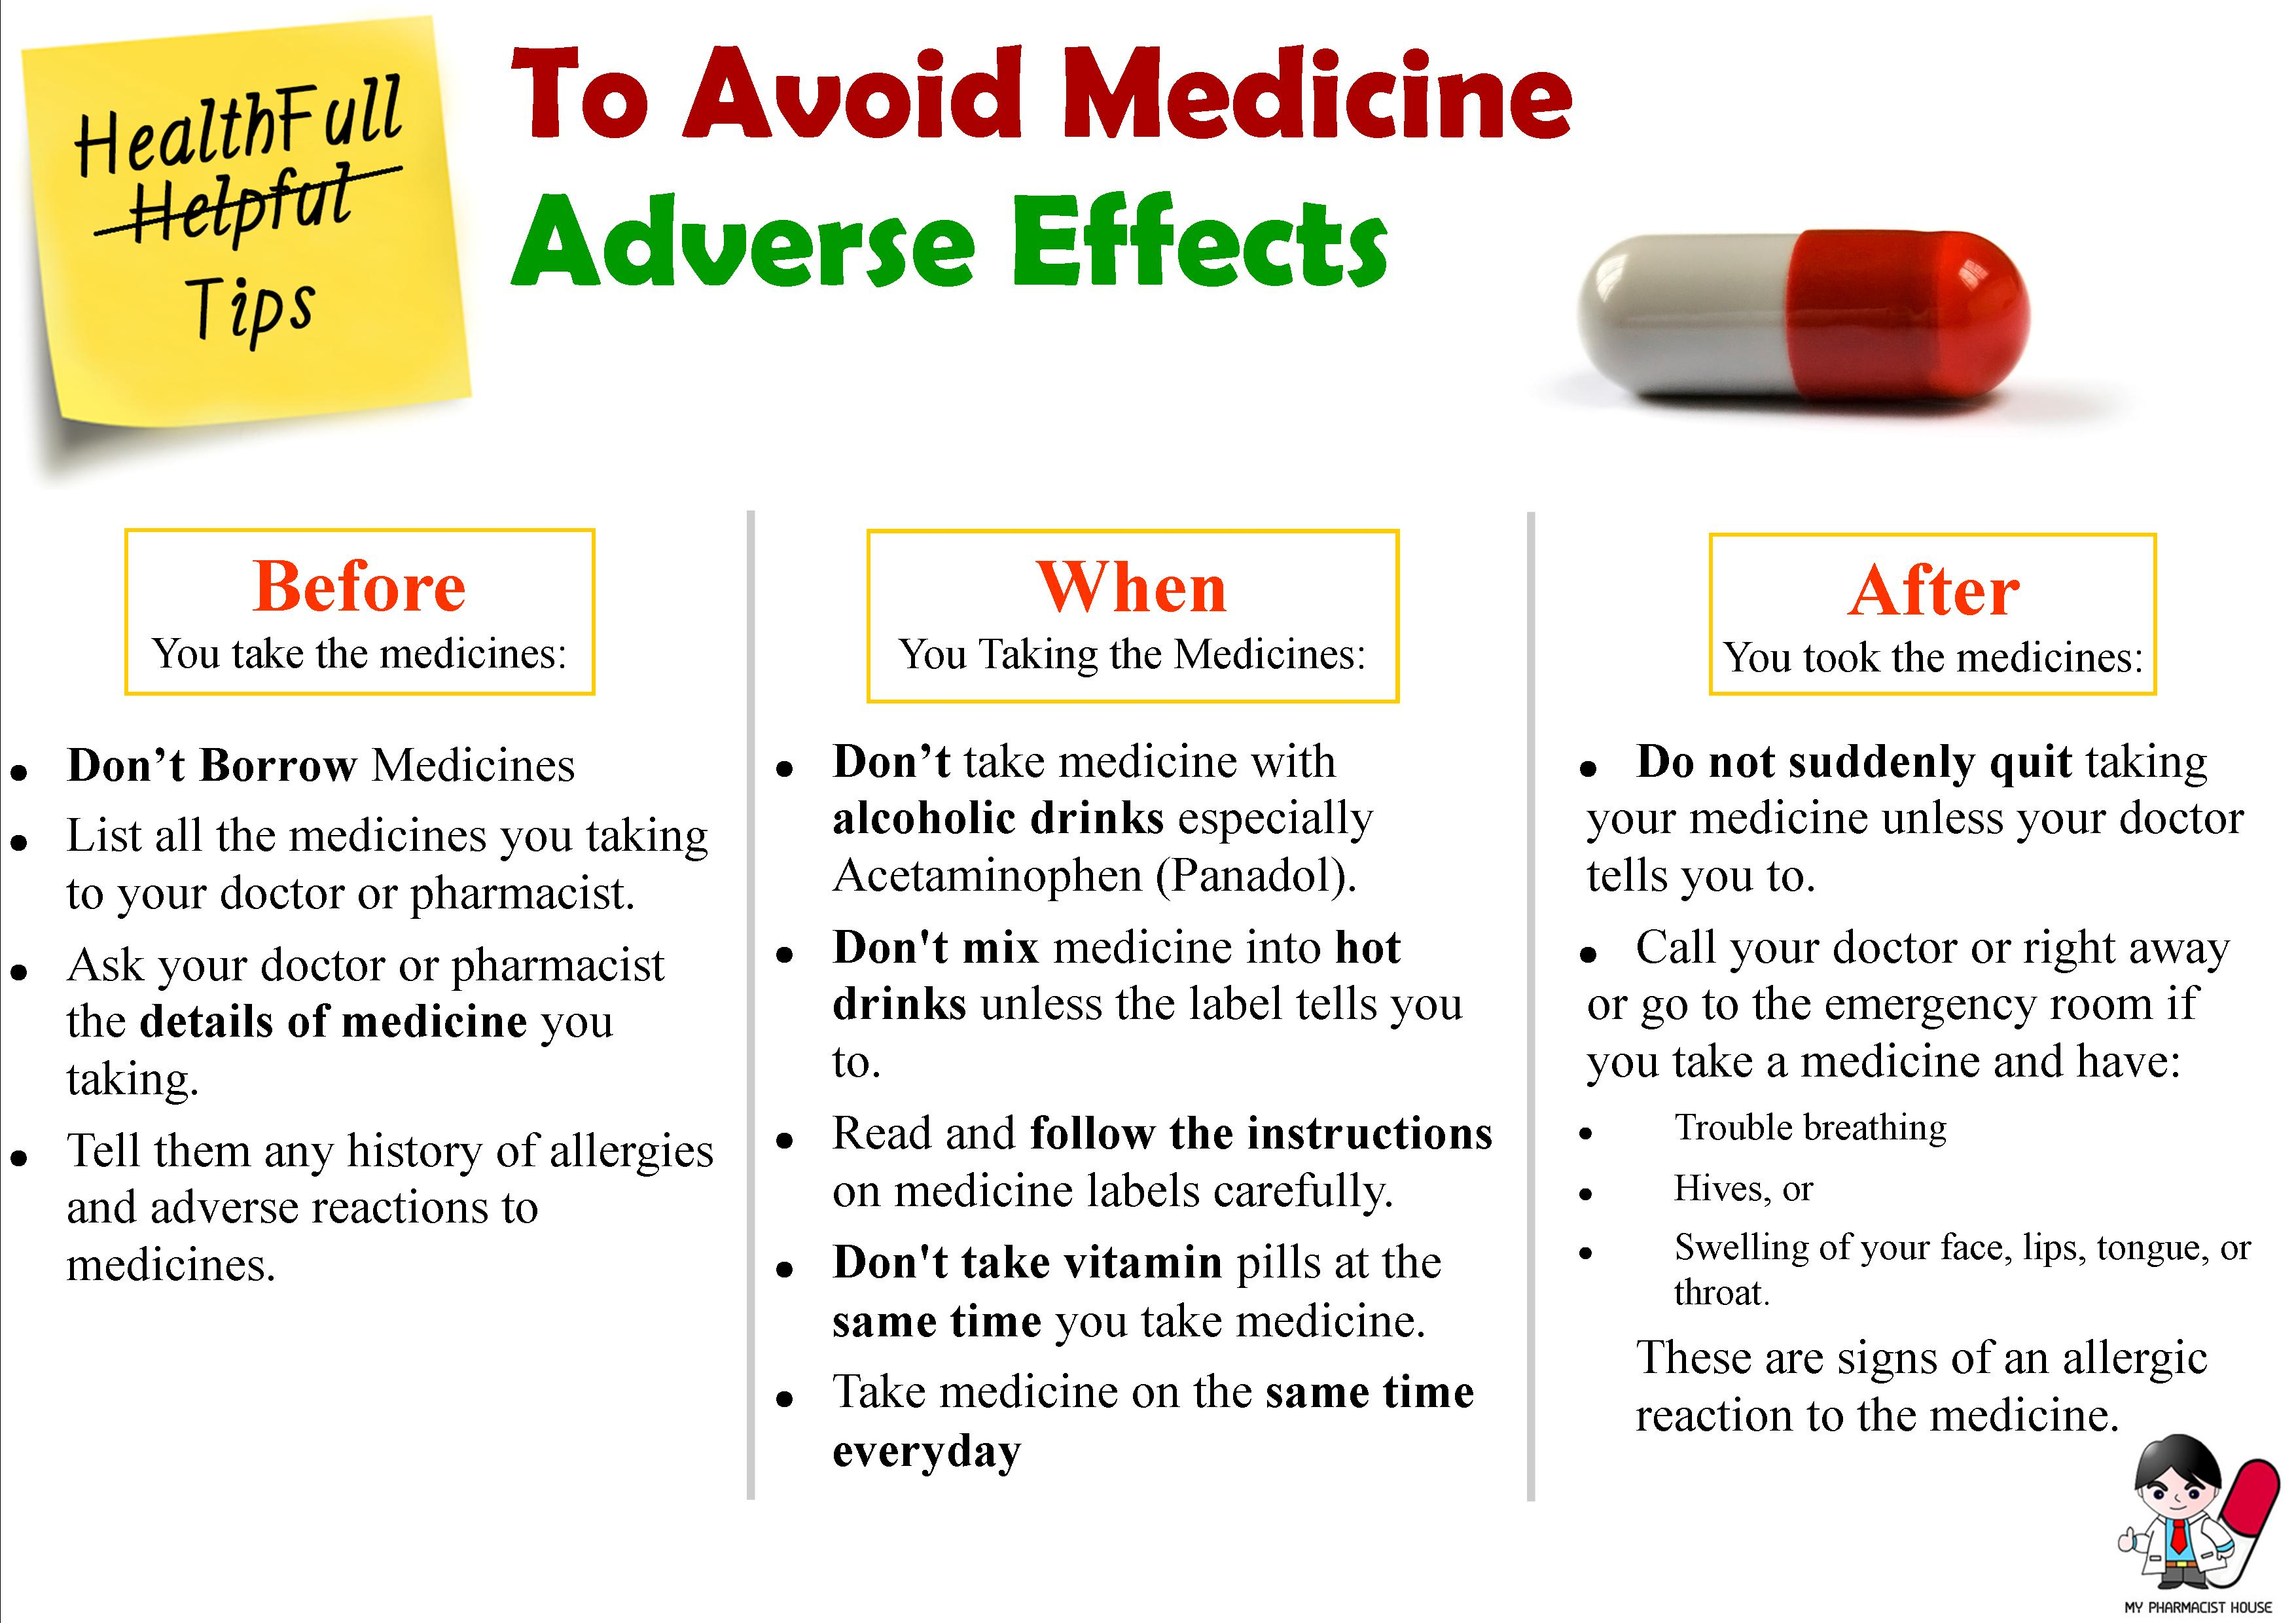 There are many side effects which are unnecessary for medicines, some